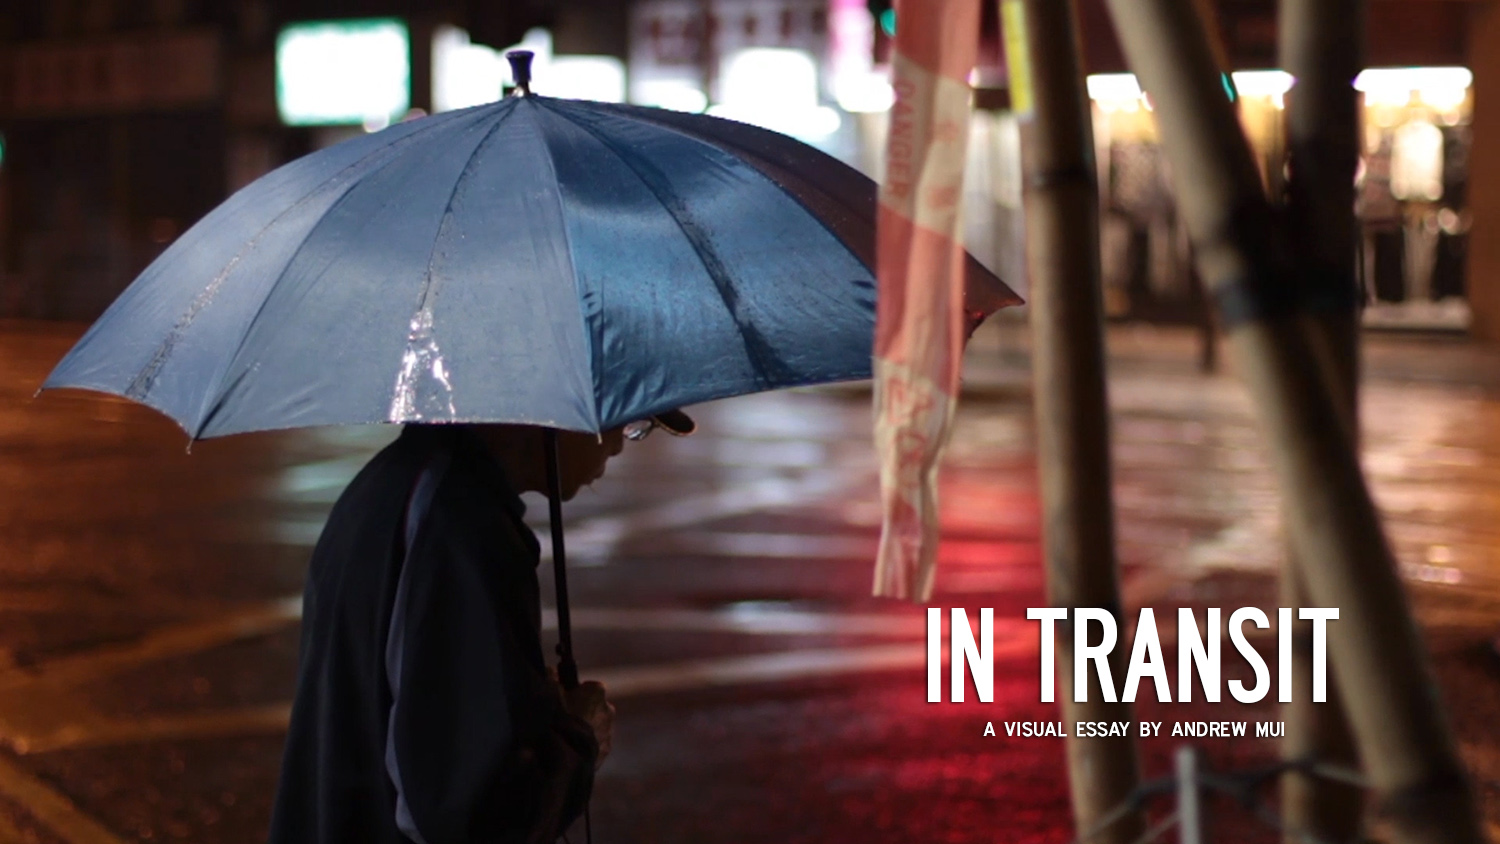 IN TRANSIT (2013) (Digital)  A visual essay directed by Andrew Mui